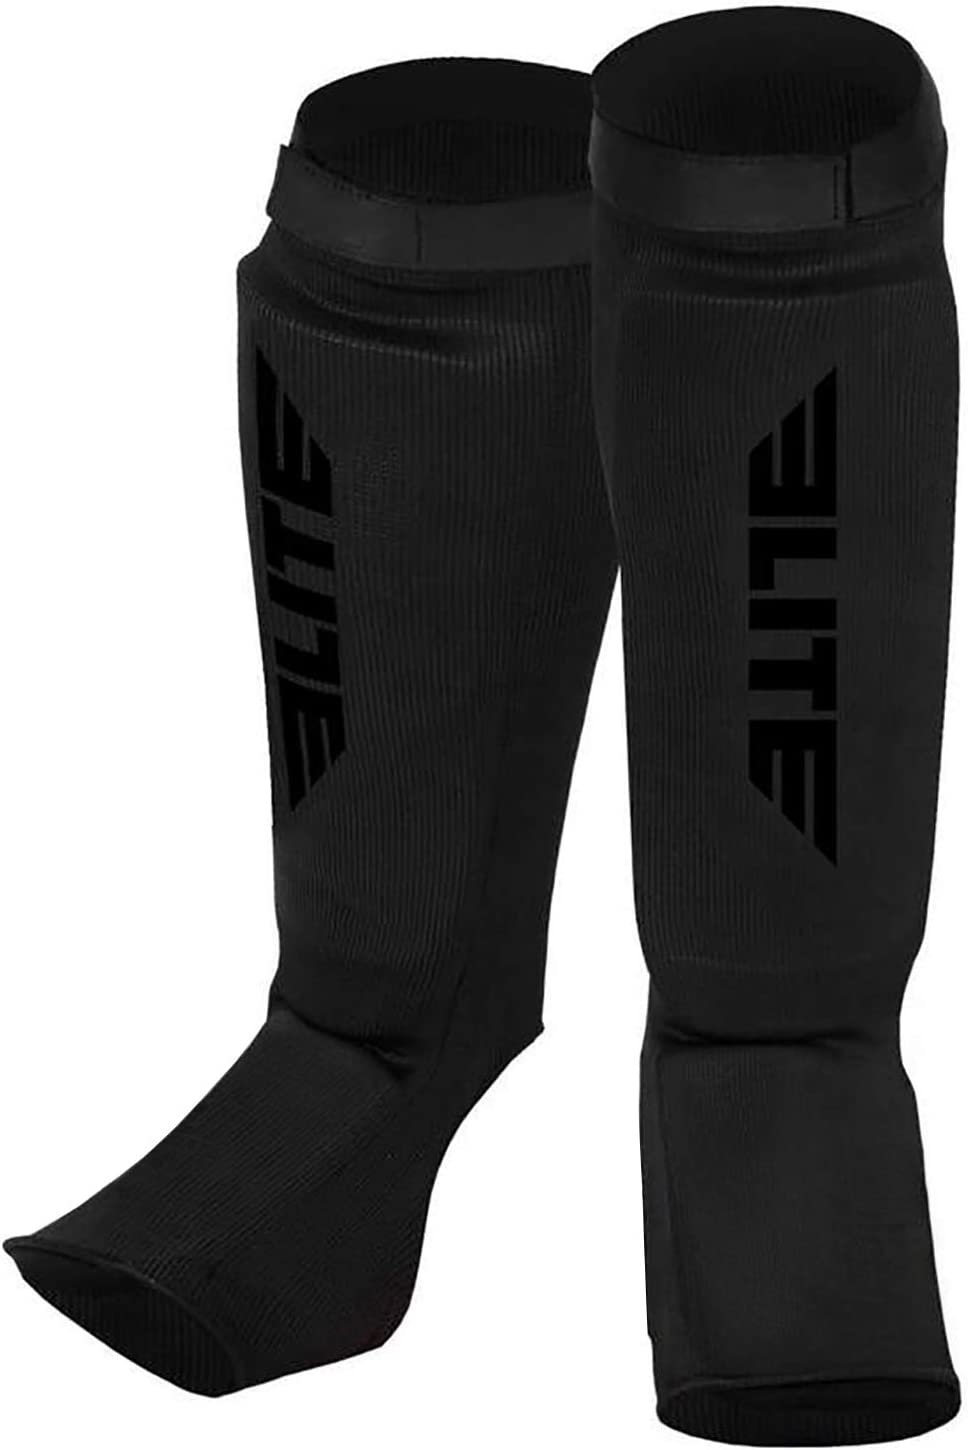 Industry No. 1 Elite Sports Limited time sale Muay Thai MMA Guards Instep Kickboxing Guard shin